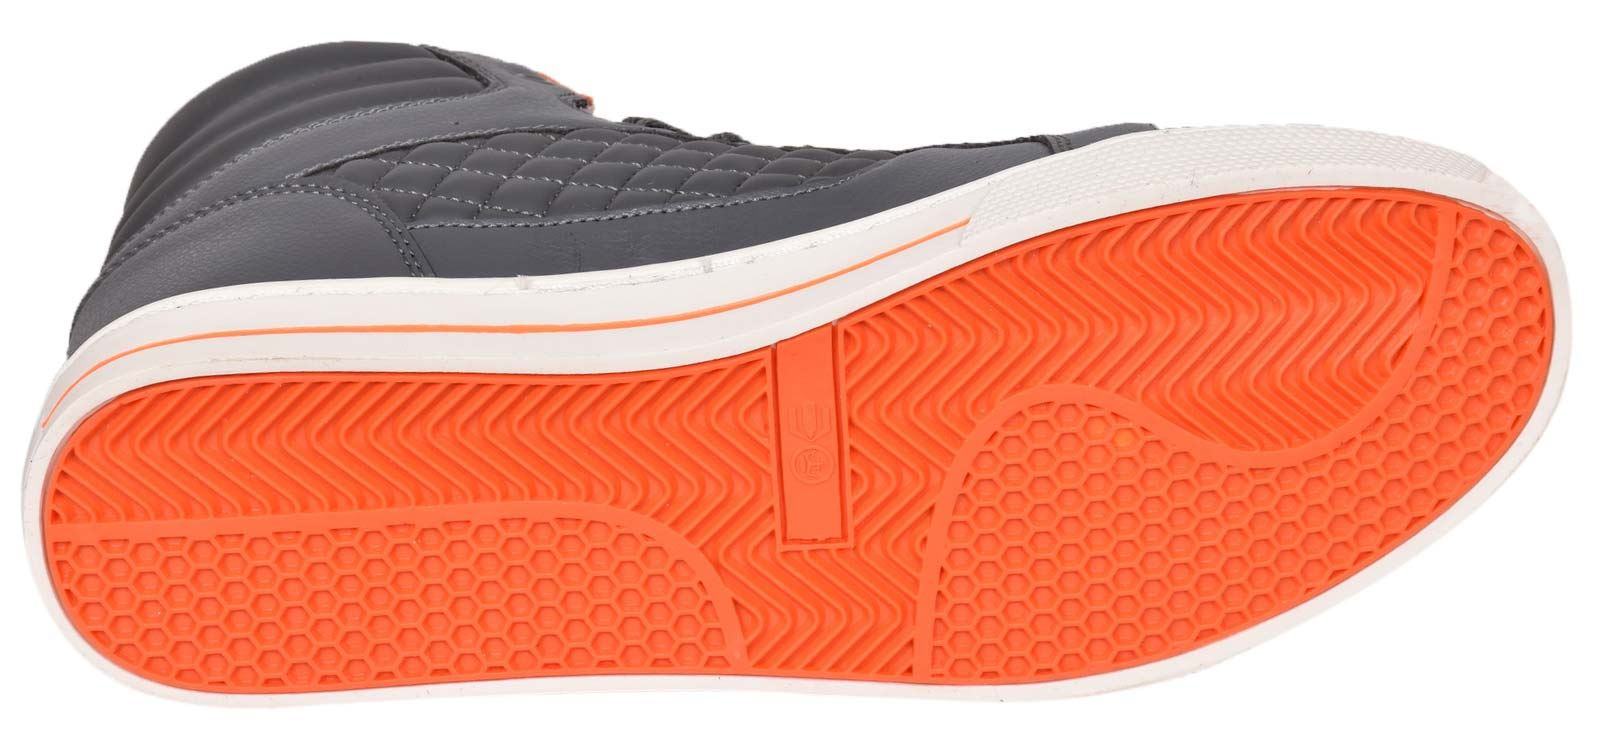 Mens-Trainers-Lace-up-Crosshatch-High-Tops-Ankle-Padded-Shoes-New-UK-Sizes-7-12 thumbnail 15